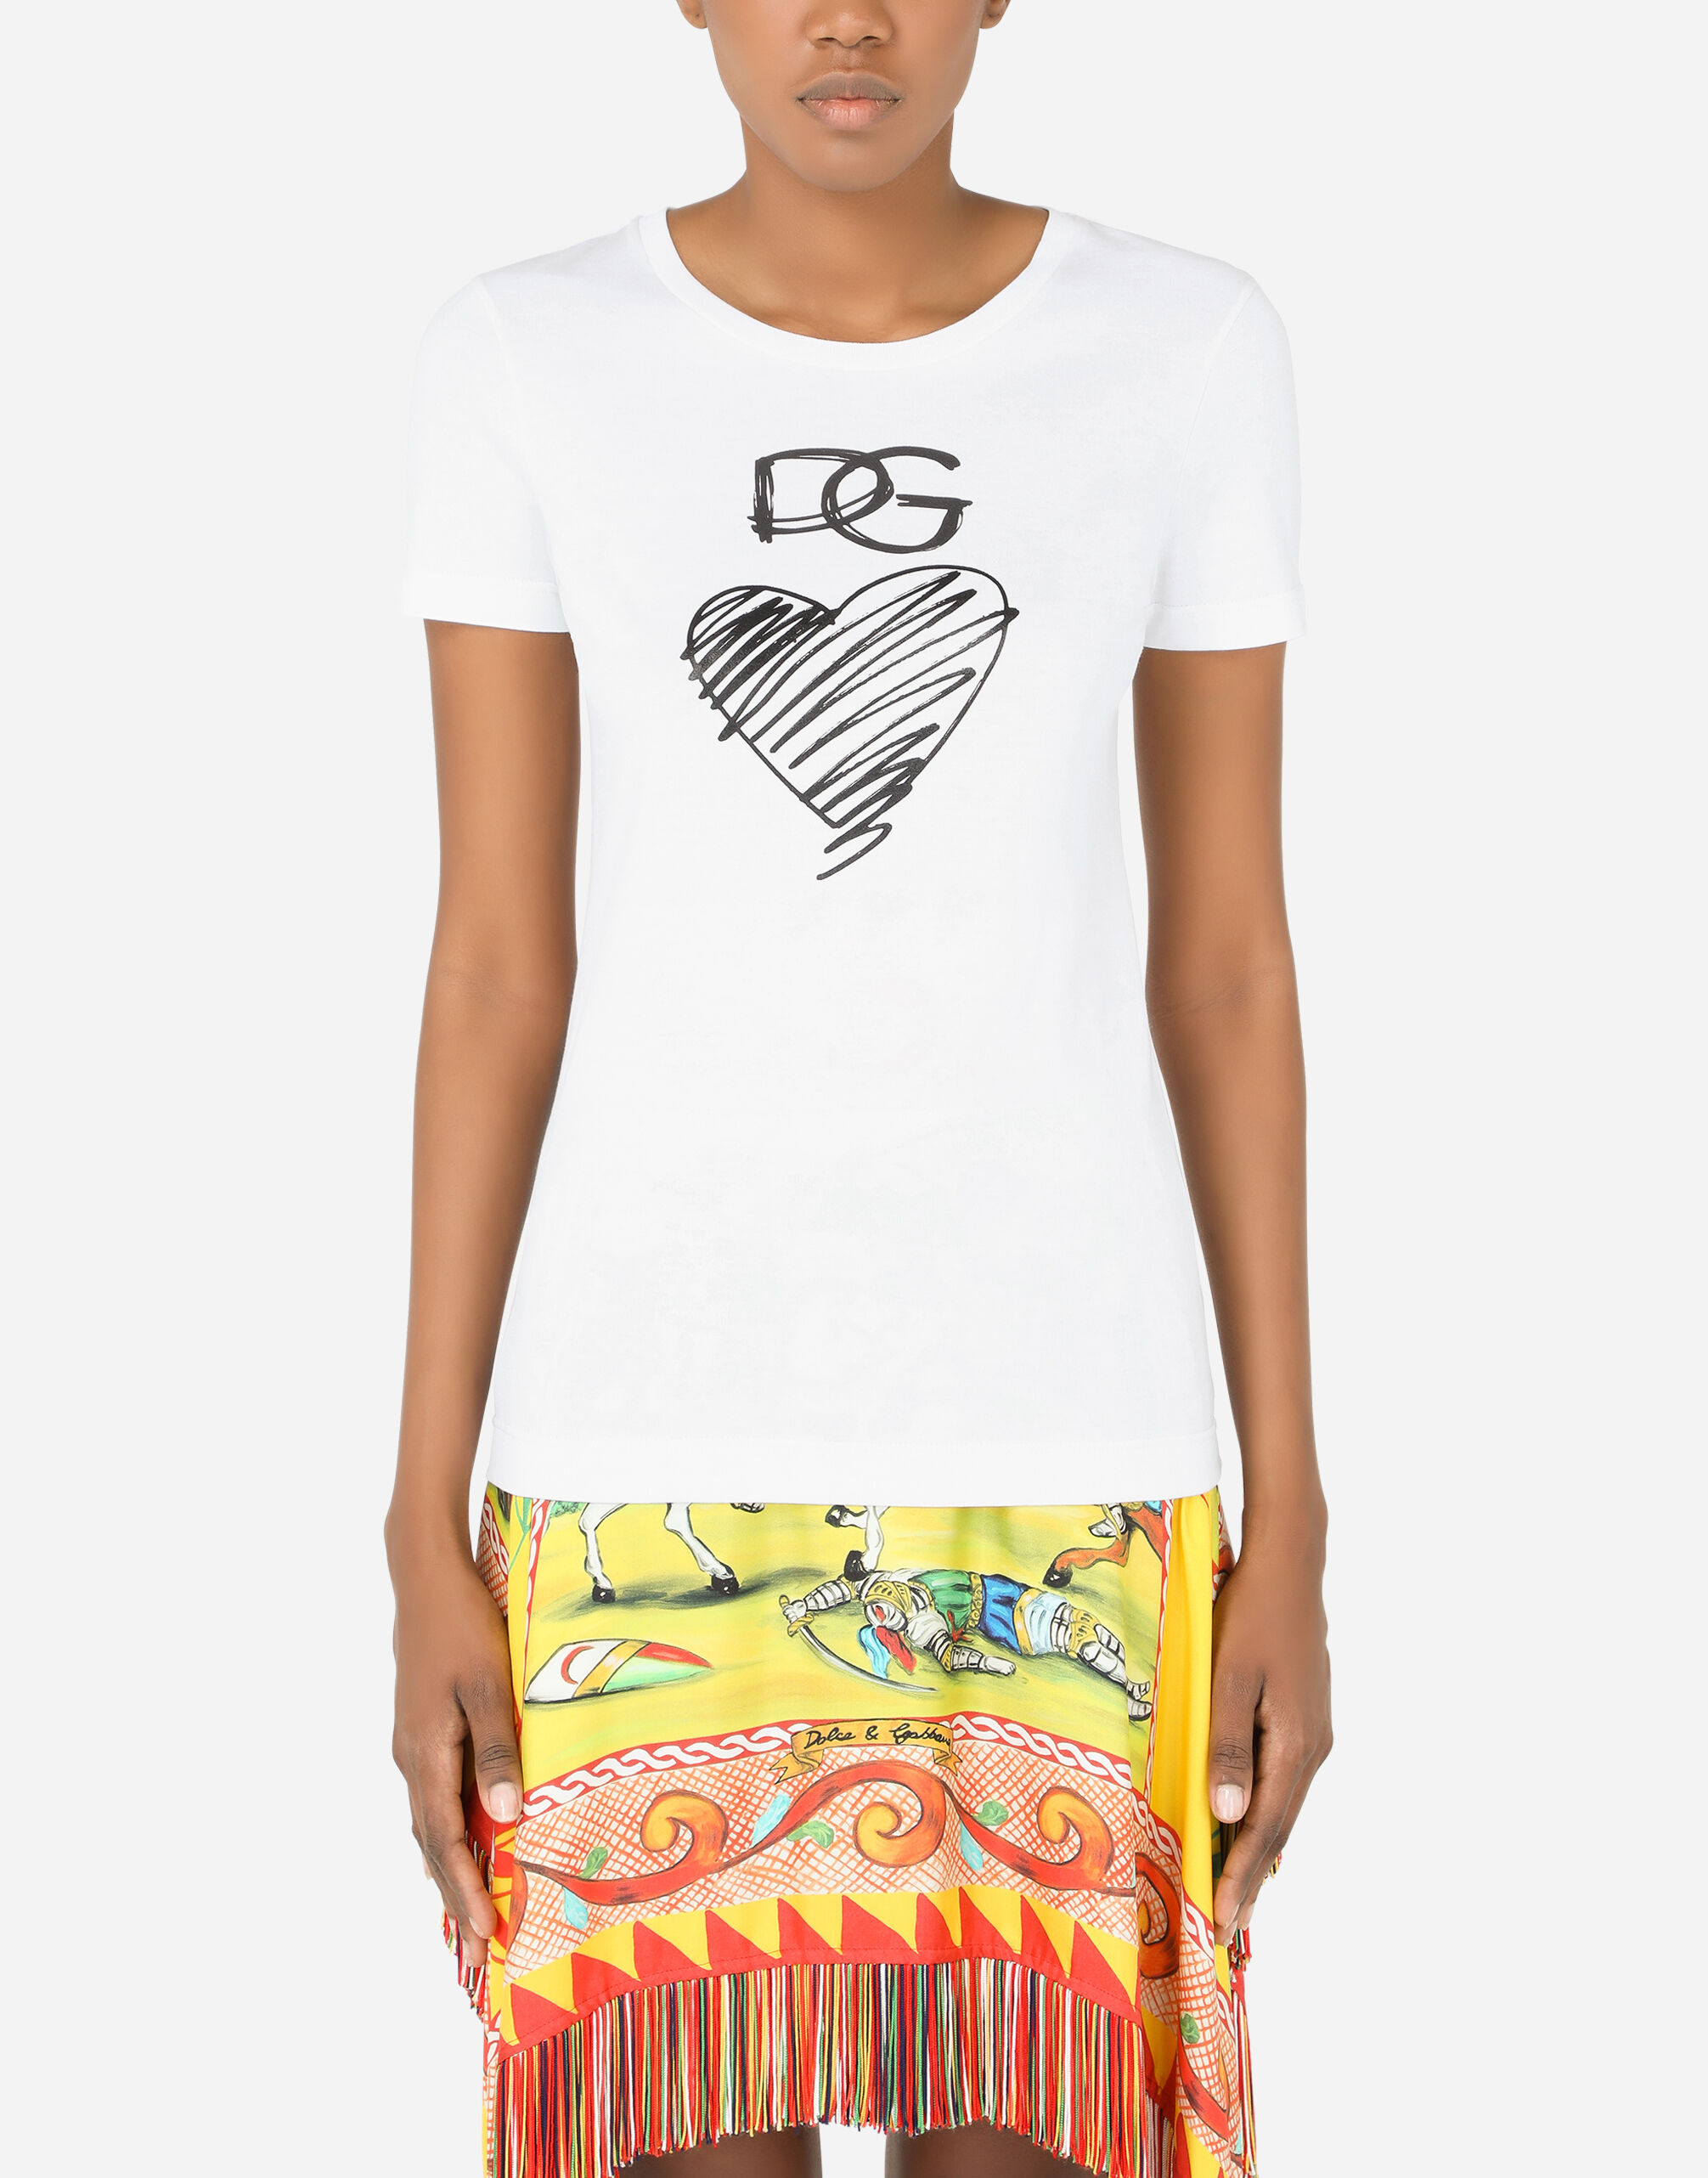 T-shirt in jersey con stampa cuore e DG